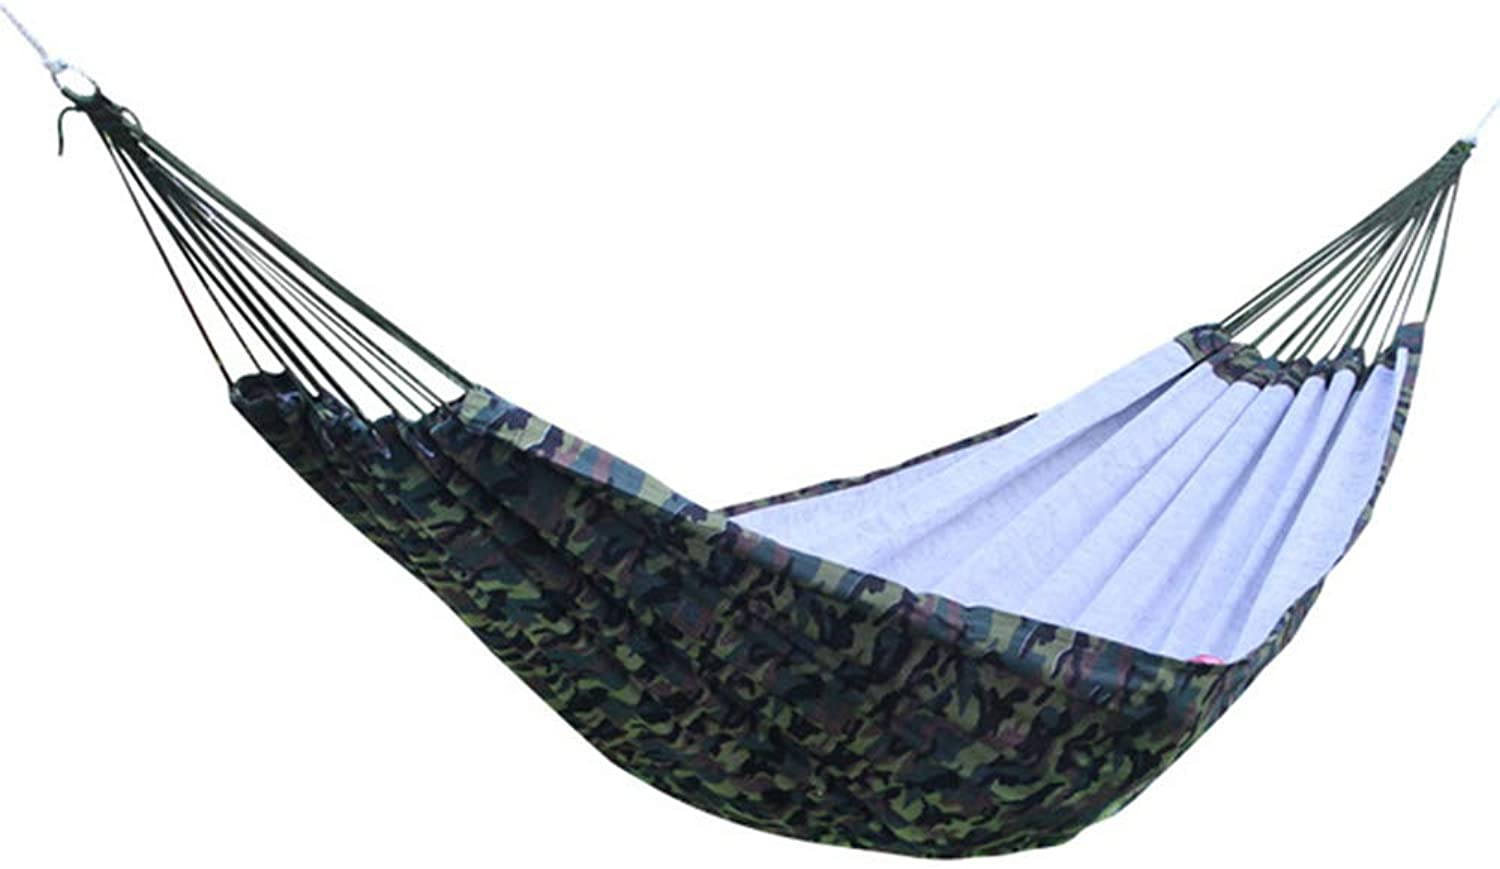 Outdoor Camping Hammock  Portable Indoor Outdoor Backpack Survival and Travel, Mountain Climbing, Courtyard, Beach, Travel.